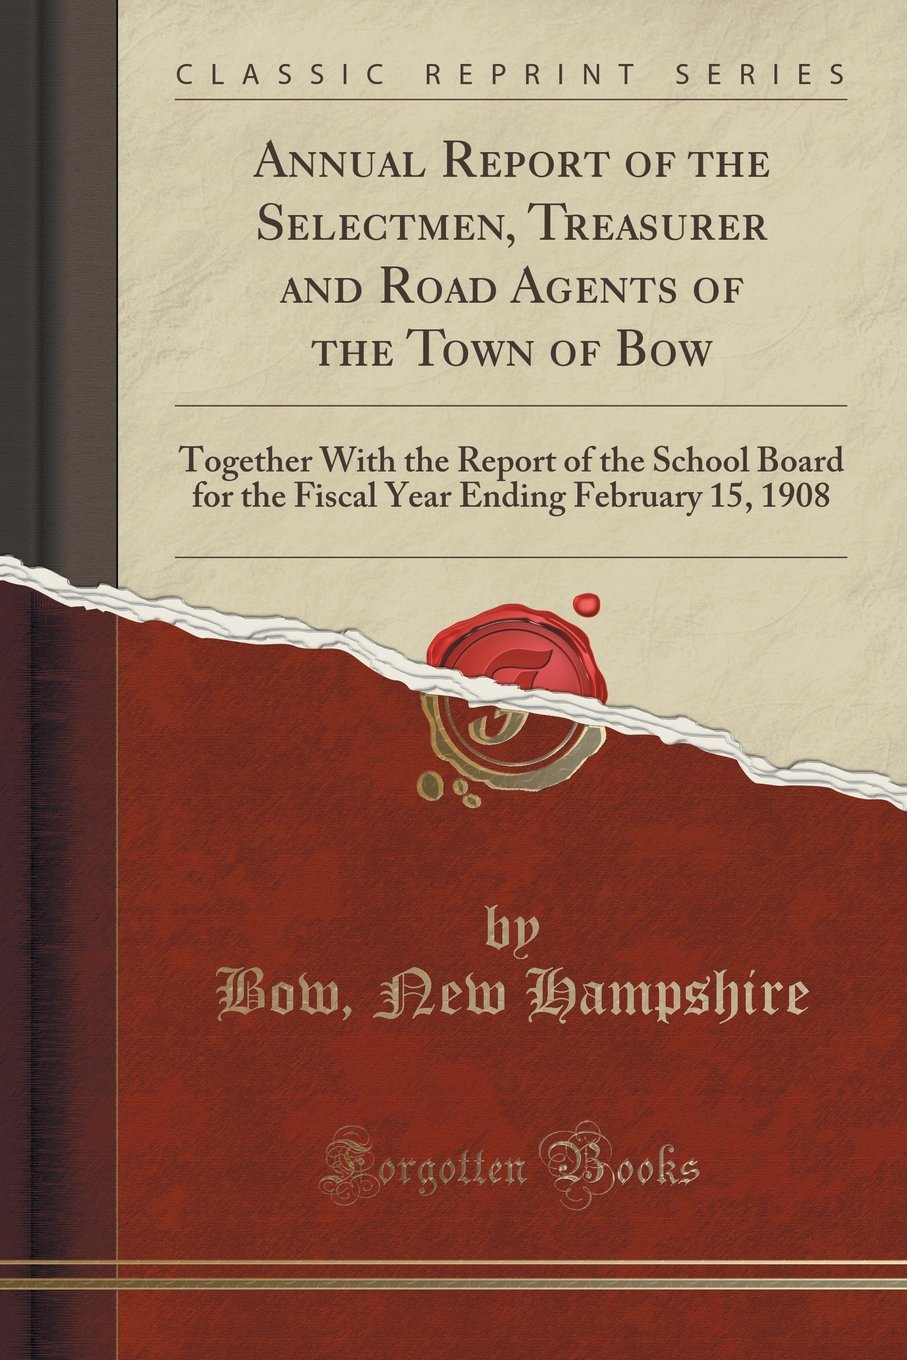 Download Annual Report of the Selectmen, Treasurer and Road Agents of the Town of Bow: Together with the Report of the School Board for the Fiscal Year Ending February 15, 1908 (Classic Reprint) pdf